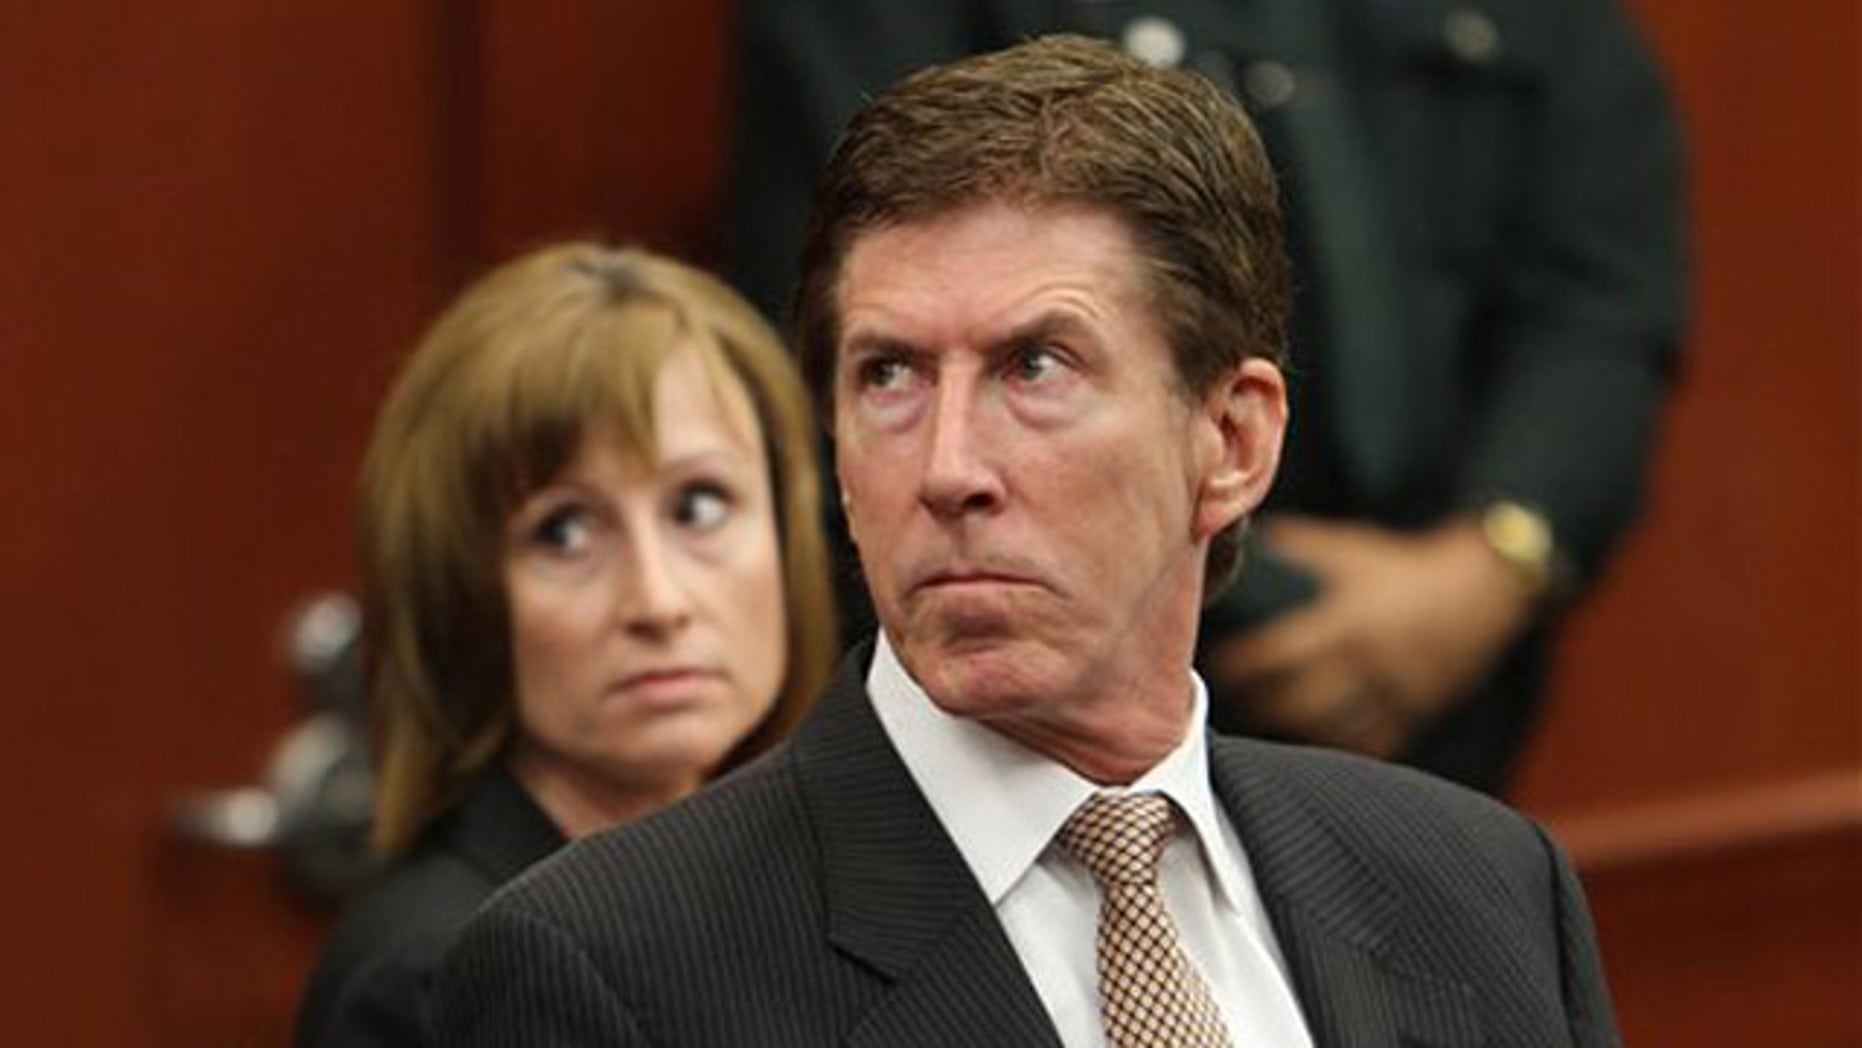 April 27, 2012: Attorney Mark O'Mara, right, and associate Lorna Truett appear in court on behalf of their client George Zimmerman during a hearing in his trial in Sanford, Fla.